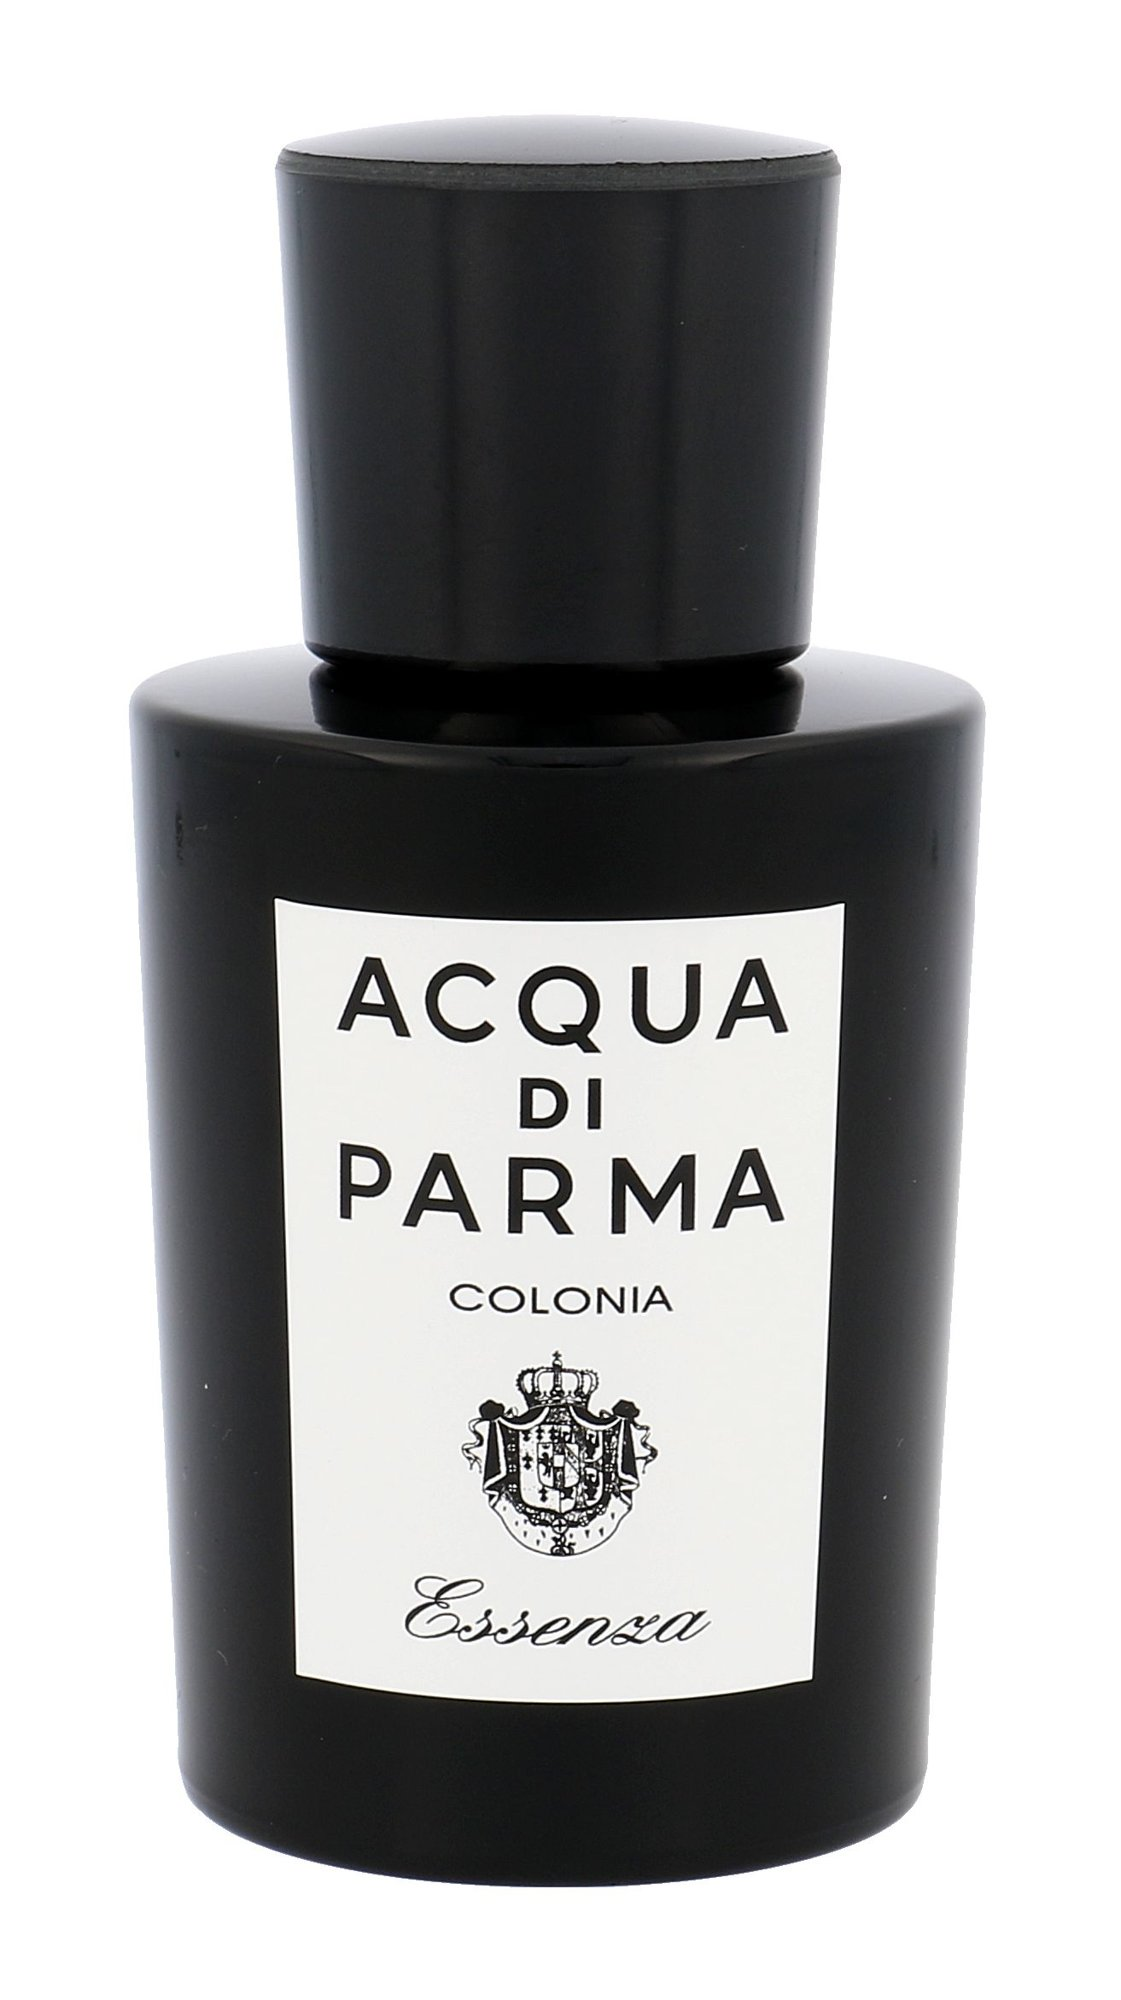 Acqua di Parma Colonia Essenza Cologne 50ml